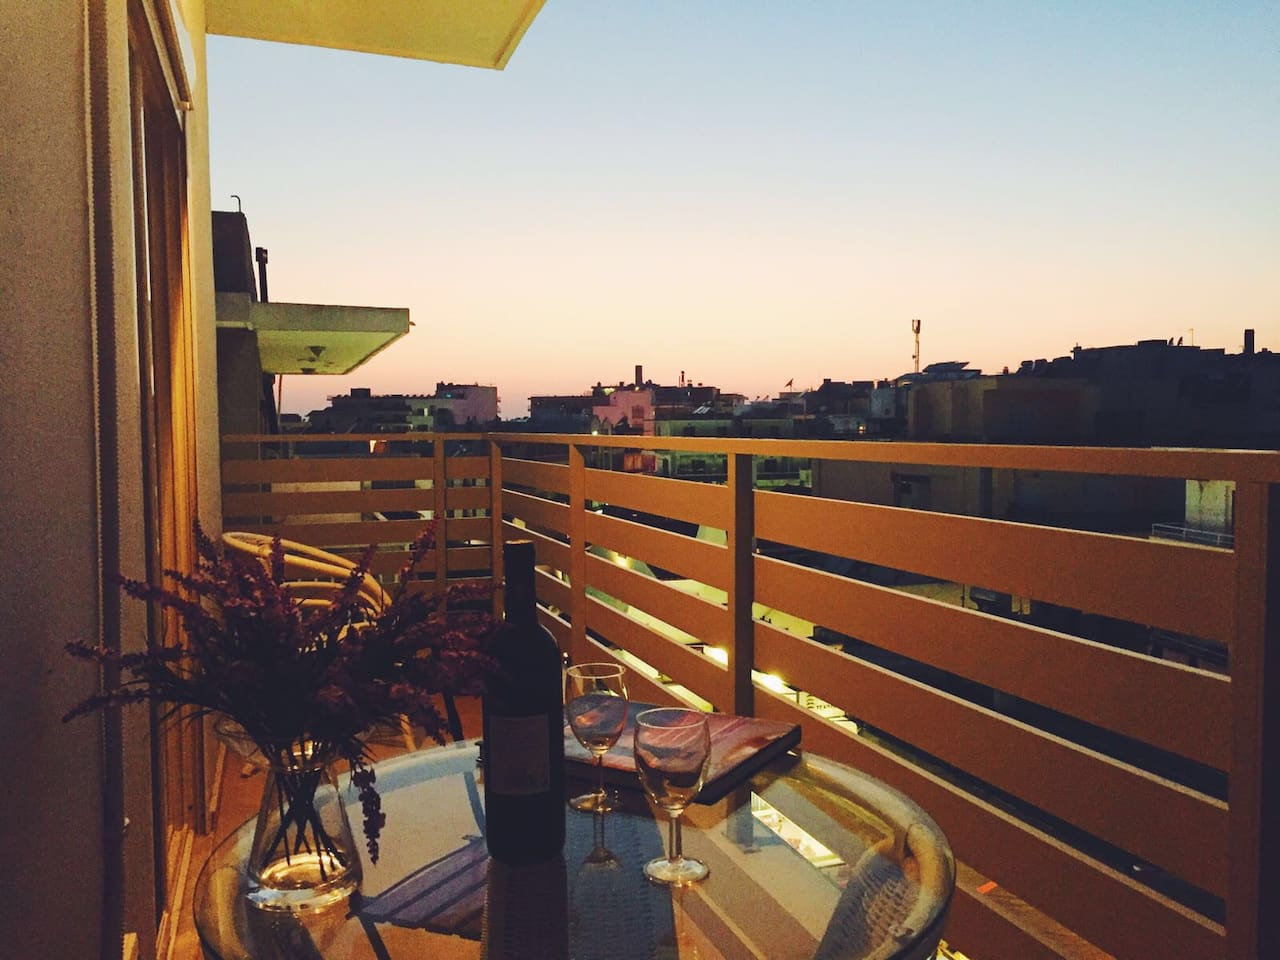 Wine and brilliant sunset, while chilling at the balcony with a magnificent view